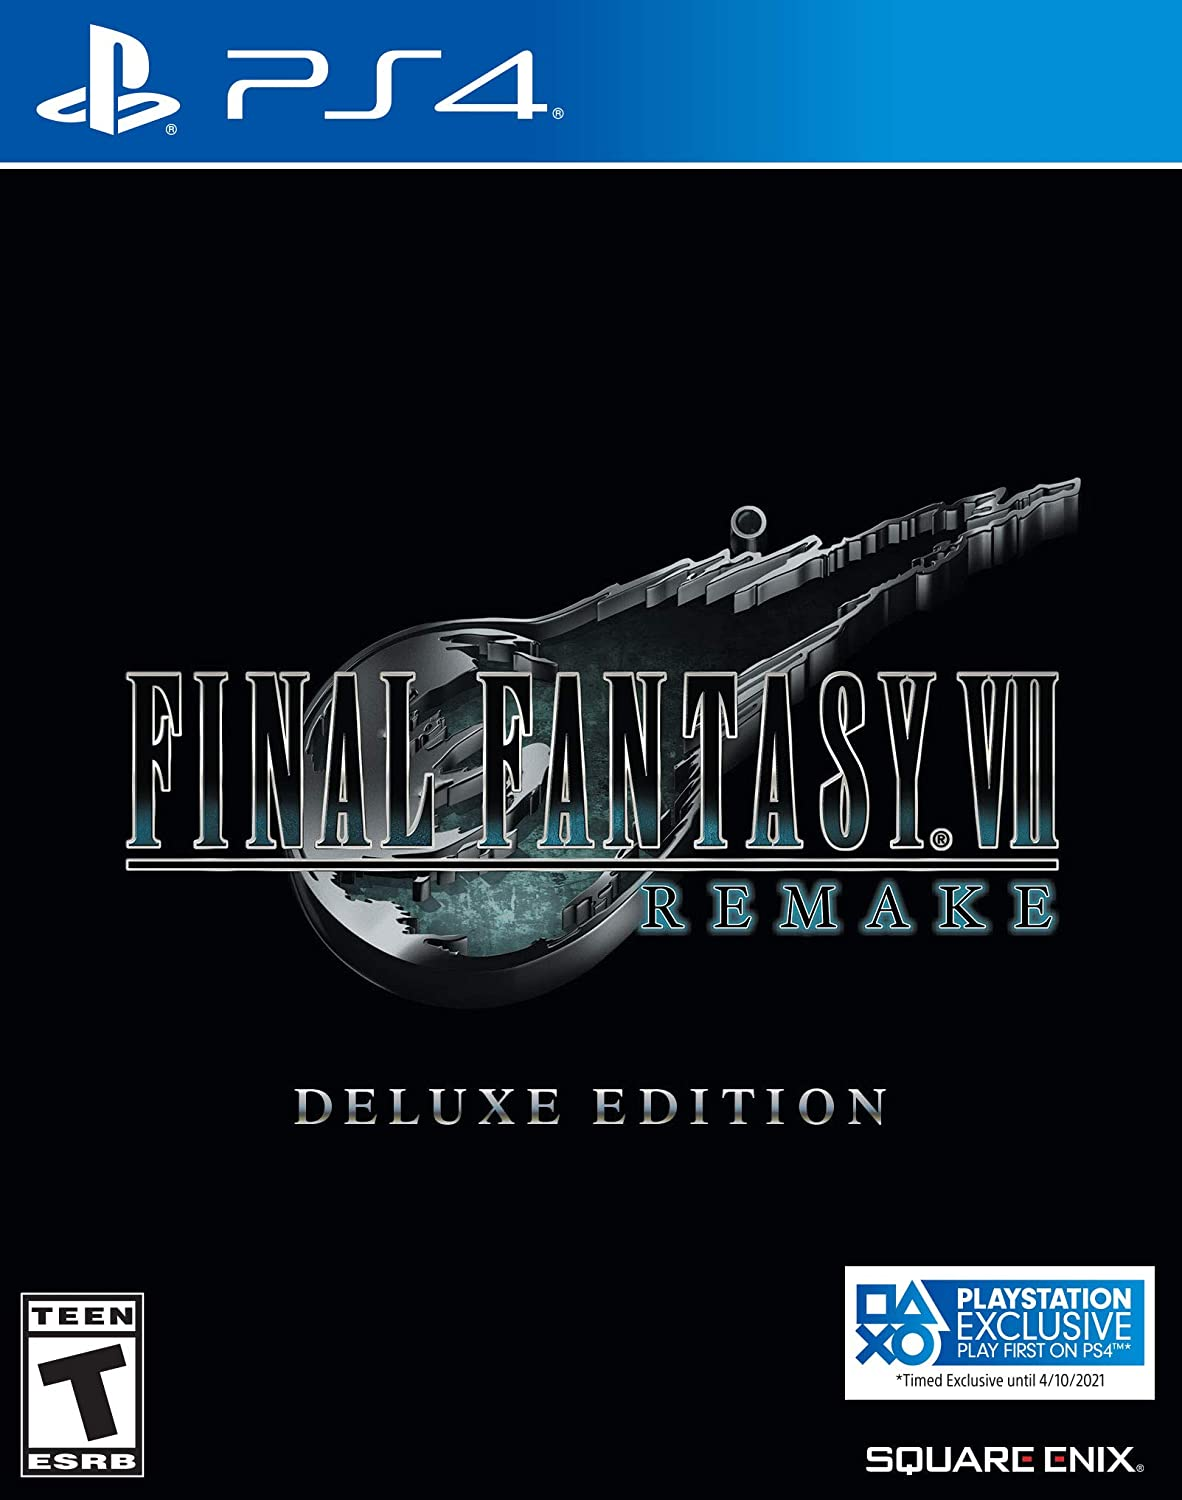 Final Fantasy VII Remake -PlayStation 4 Deluxe Edition | Video game Review